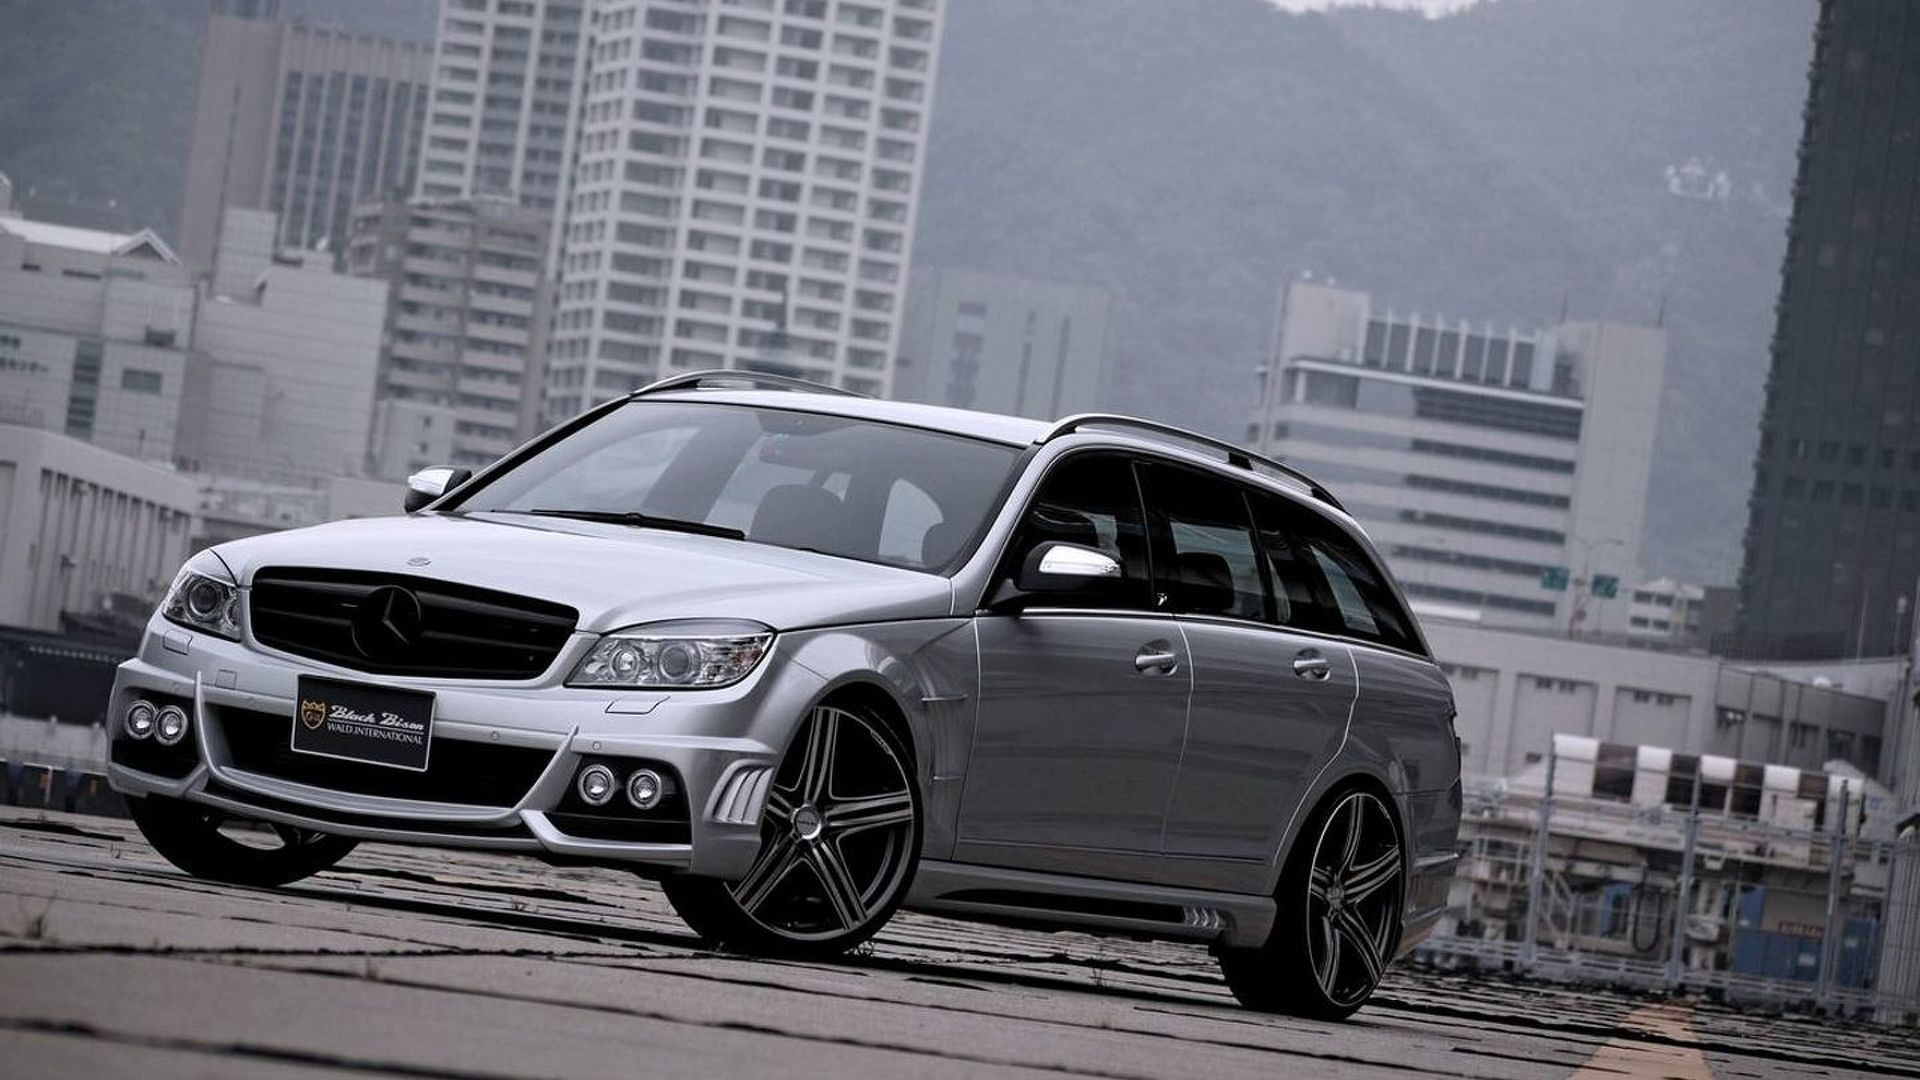 Wald sports line black bison editions for mercedes c class wagon r class